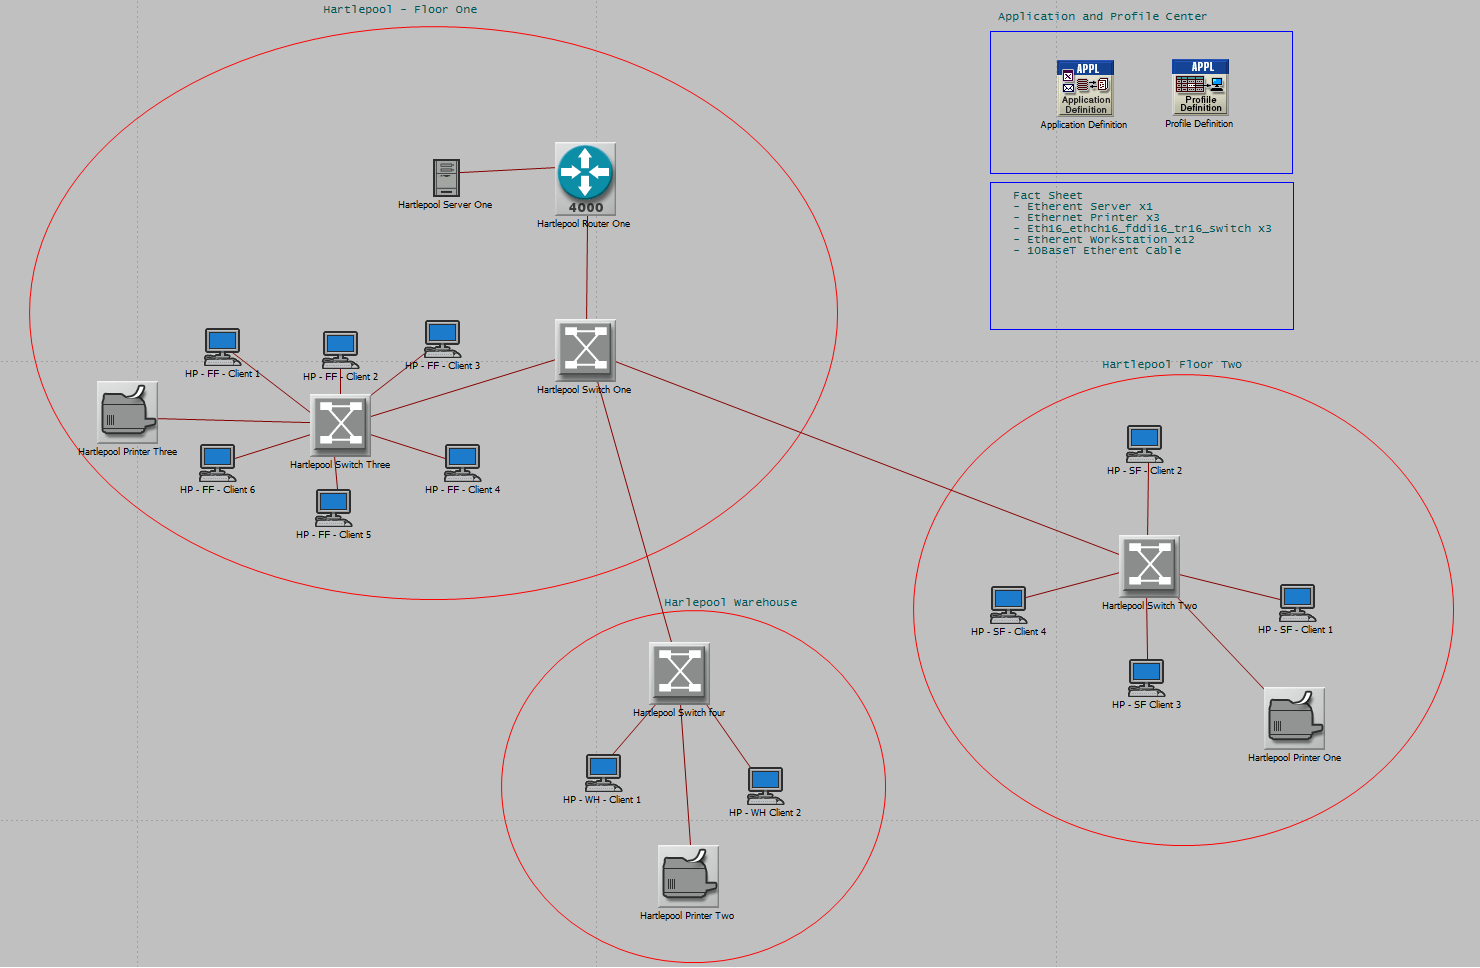 hight resolution of hartlepool final tree topology diagram